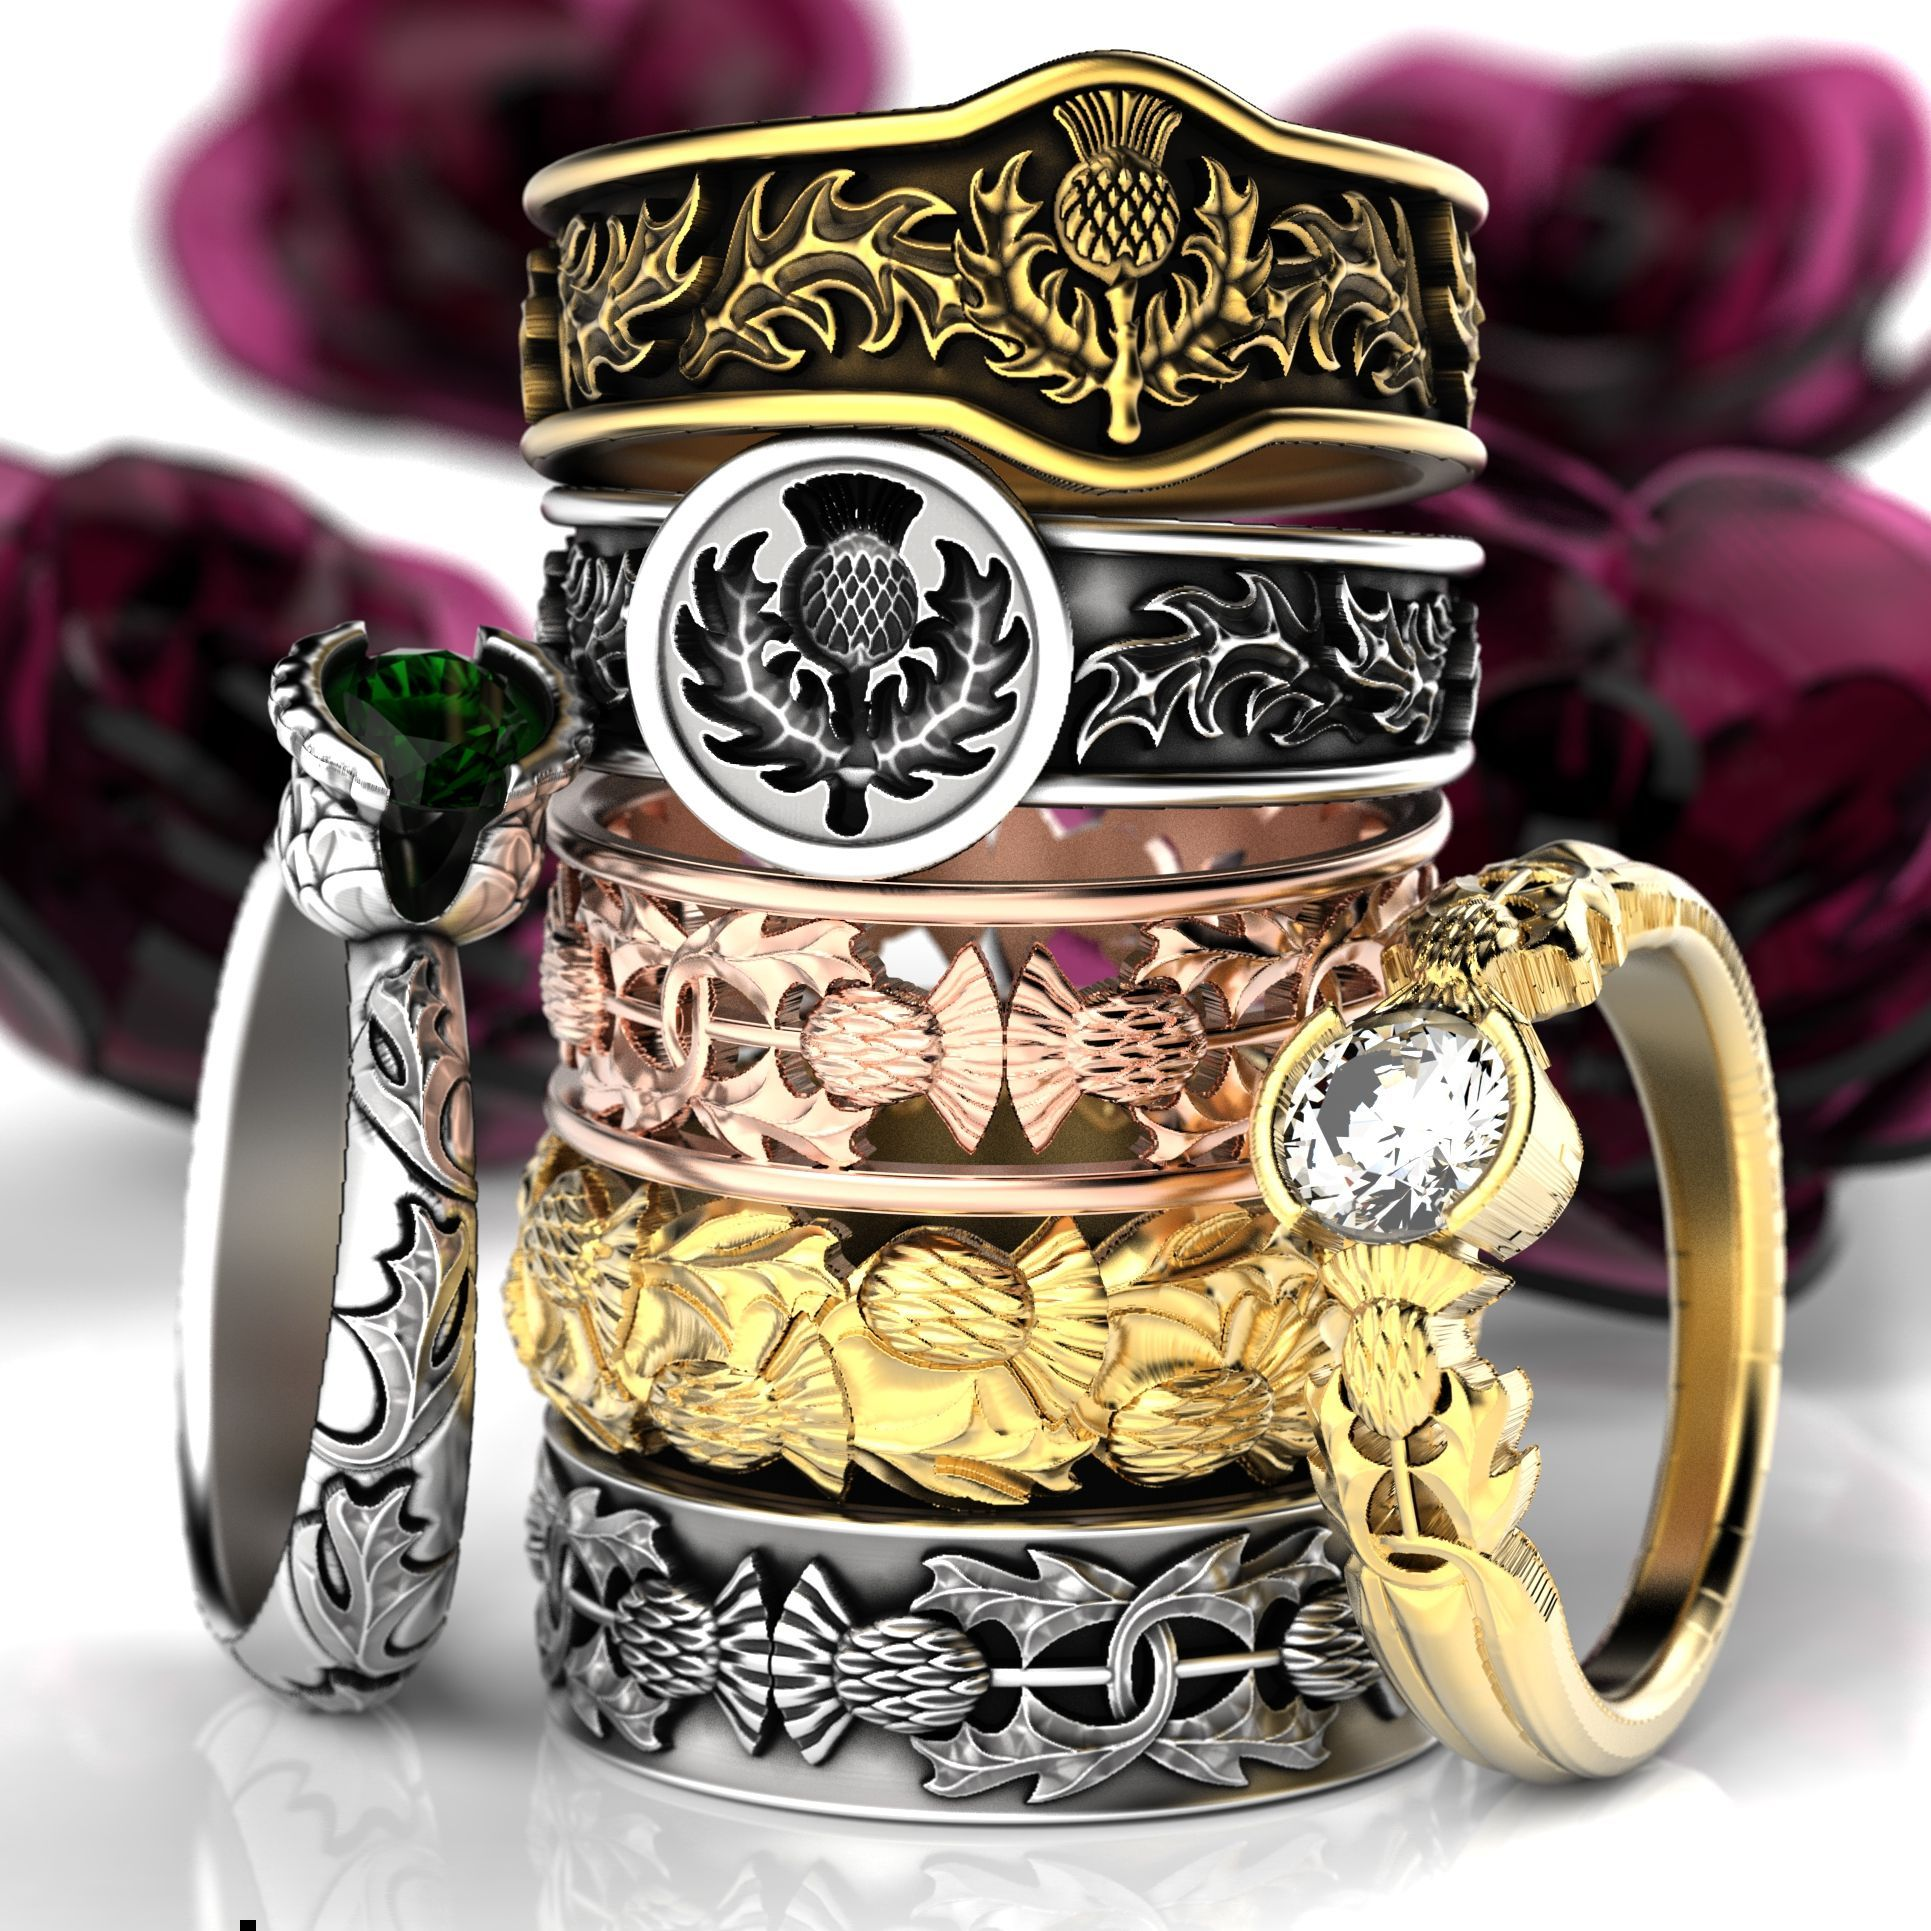 Scottish thistle wedding bands, engagement rings and